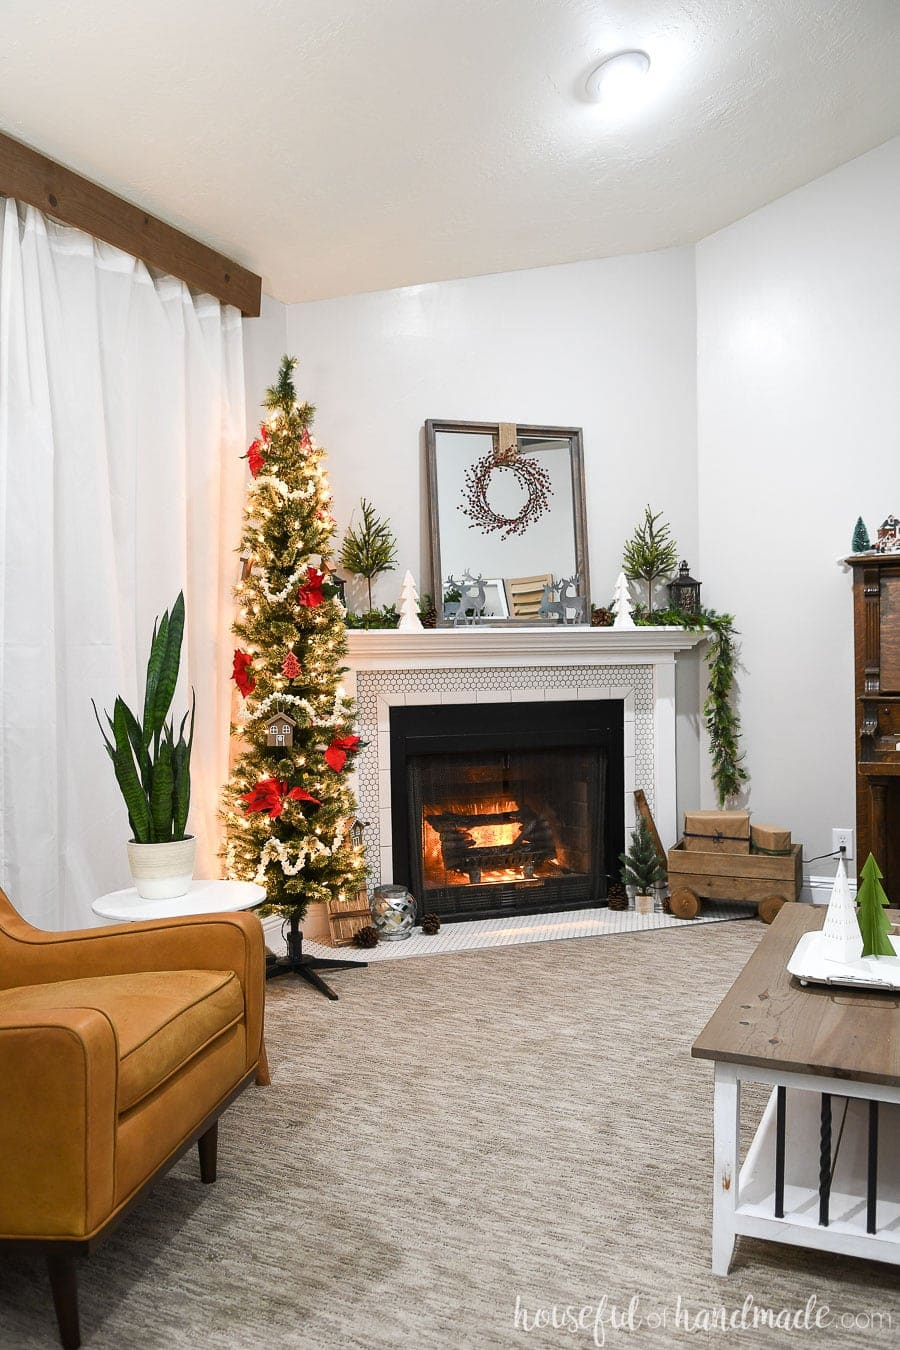 Full view of the living room decorated for the Classic Christmas home tour. Pencil tree next to the fireplace decorated with poinsettias and popcorn garland.